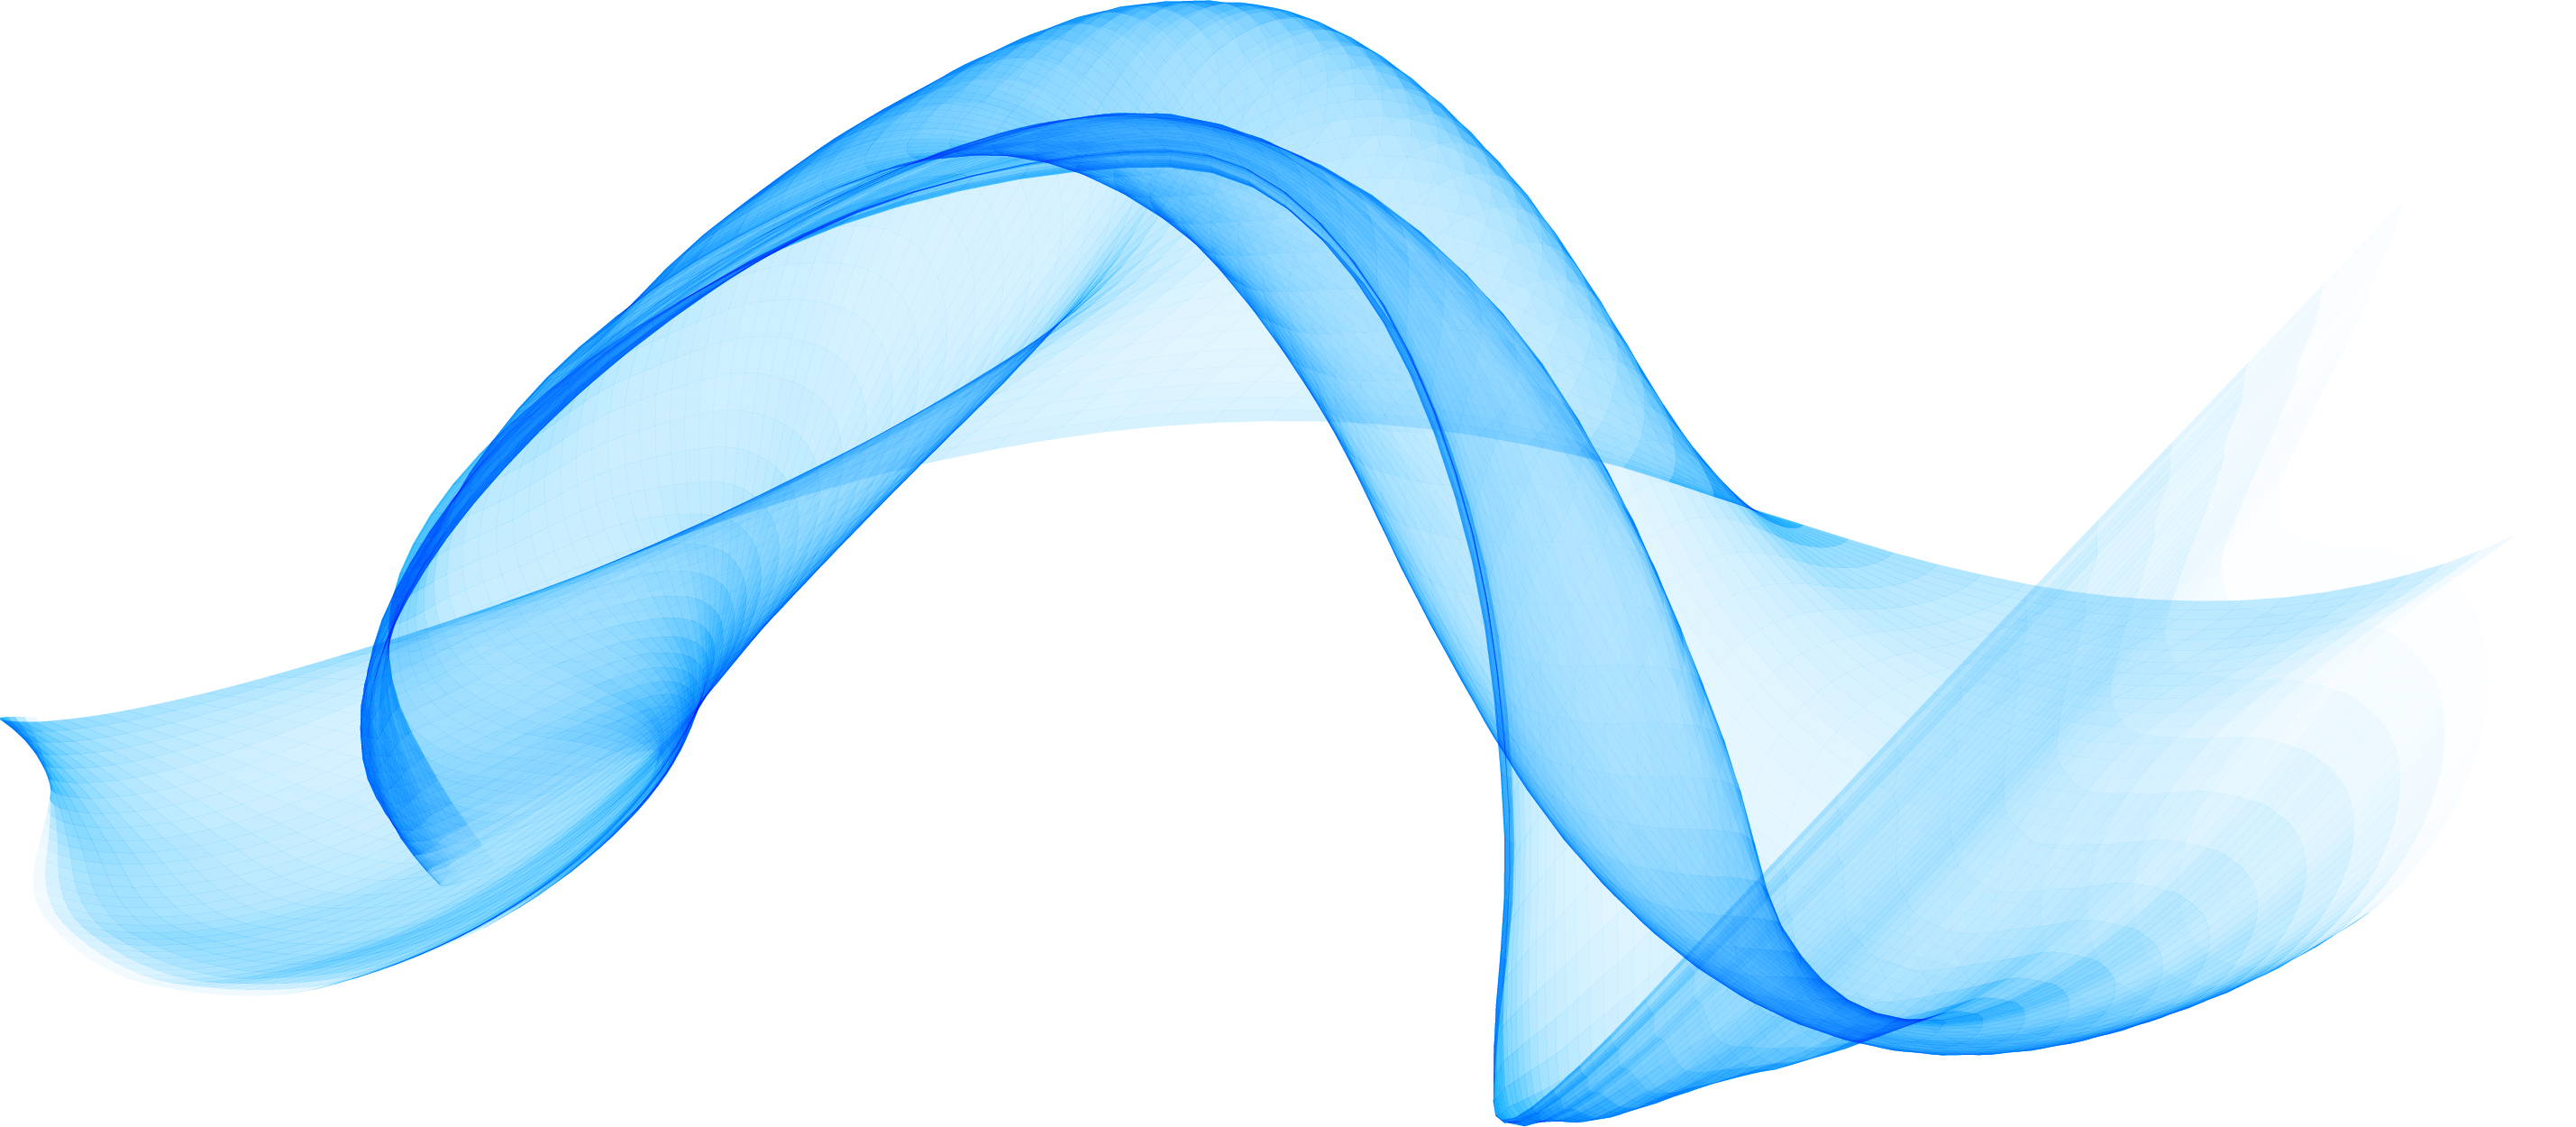 Ripples vector. Blue wave computer file